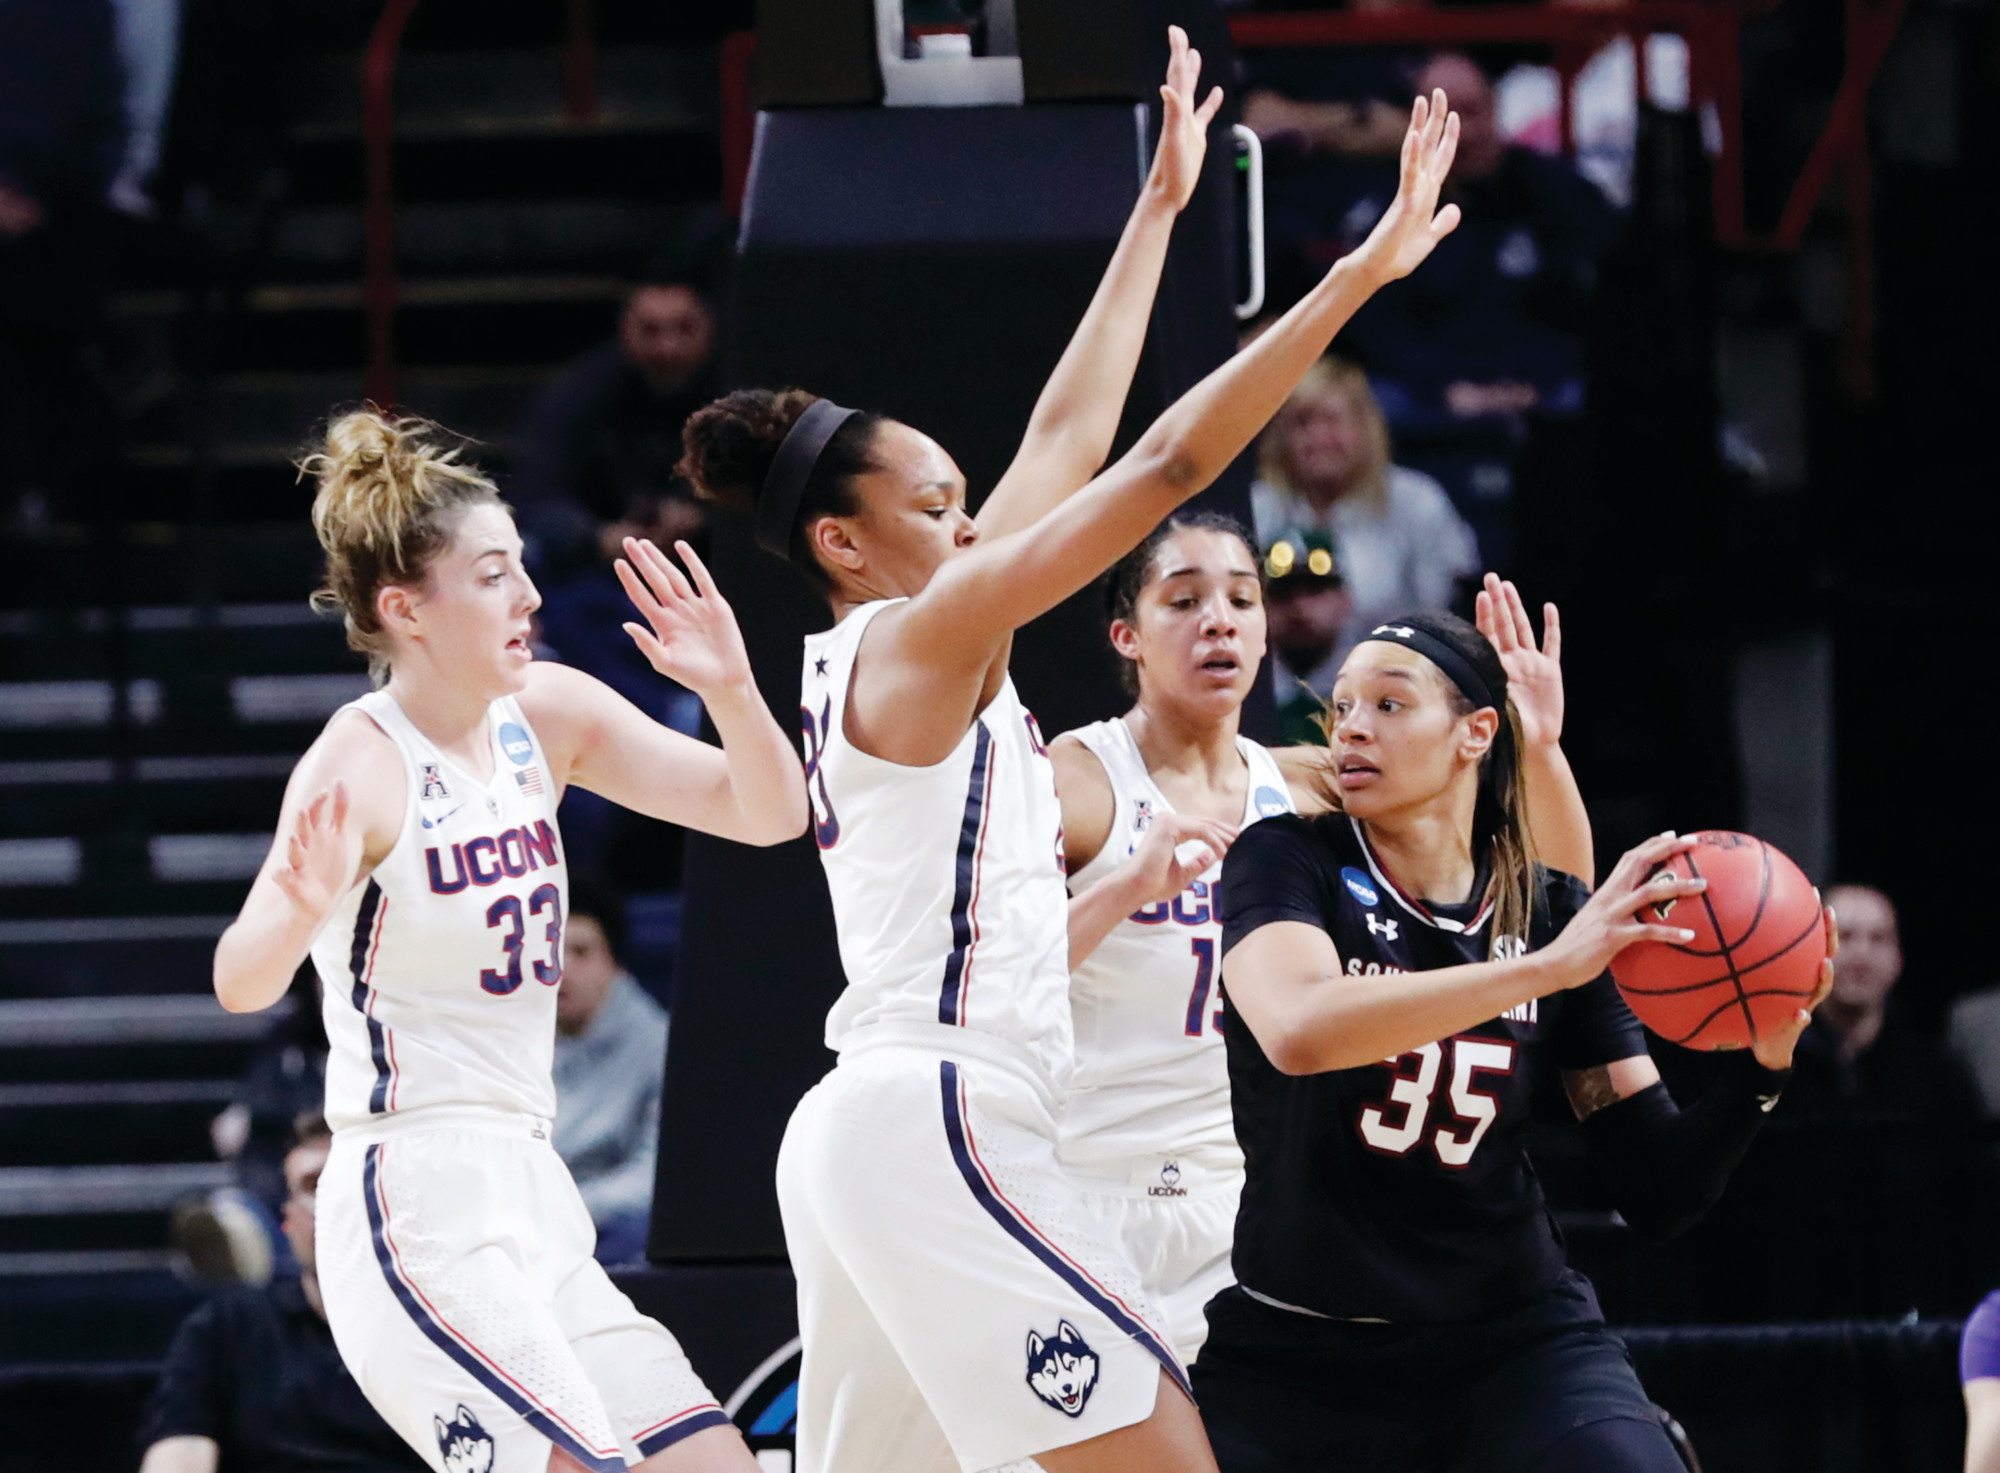 South Carolina's Alexis Jennings (35) looks to pass against a trio of Connecituct defenders during the Gamecocks' 94-65 loss in the Albany Regional championship game of the women's NCAA tournament on Monday in Albany, N.Y.